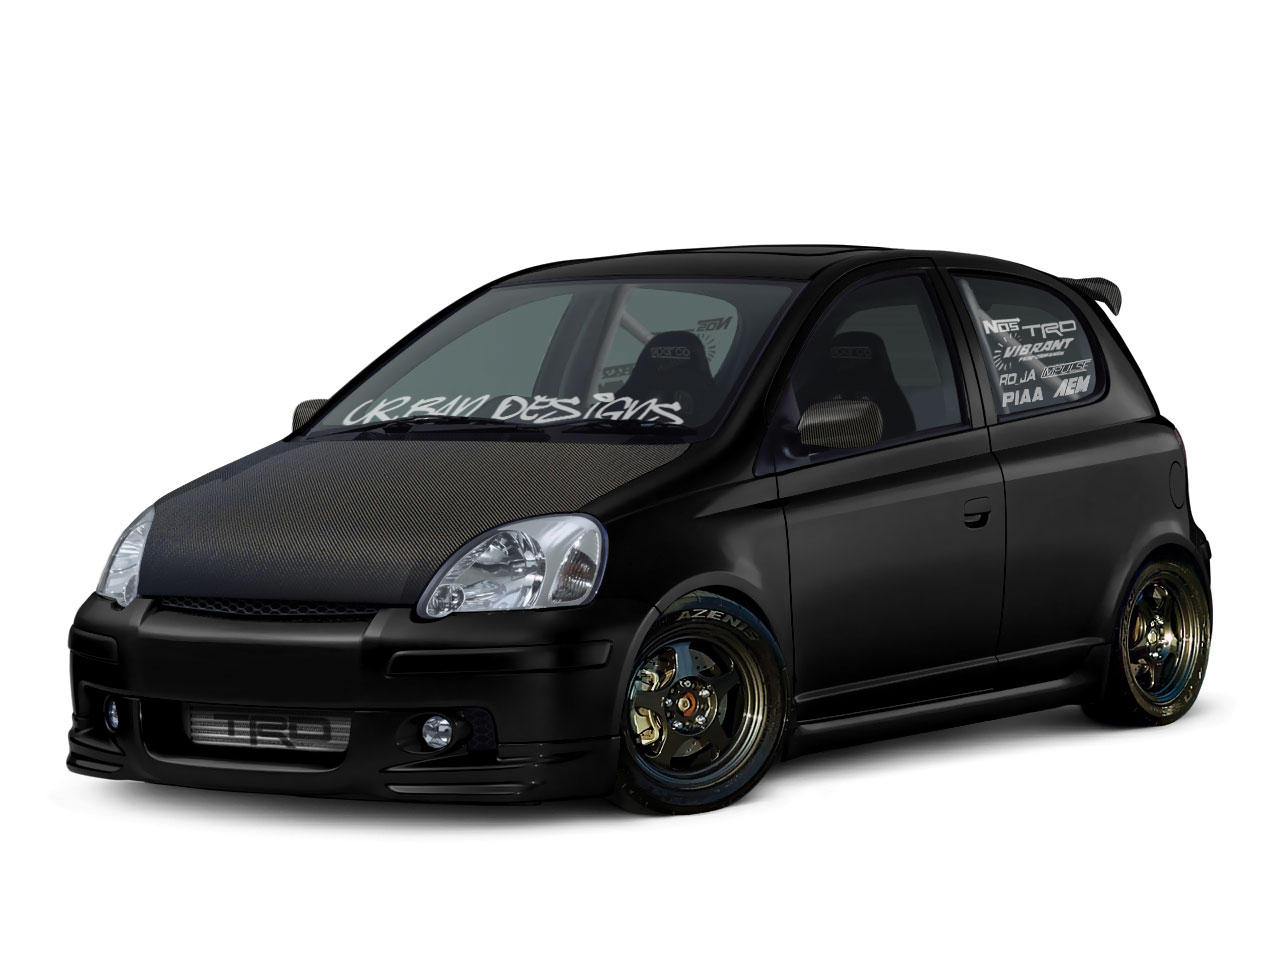 toyota yaris trd turbo sportivo m/t by urban designs on deviantart